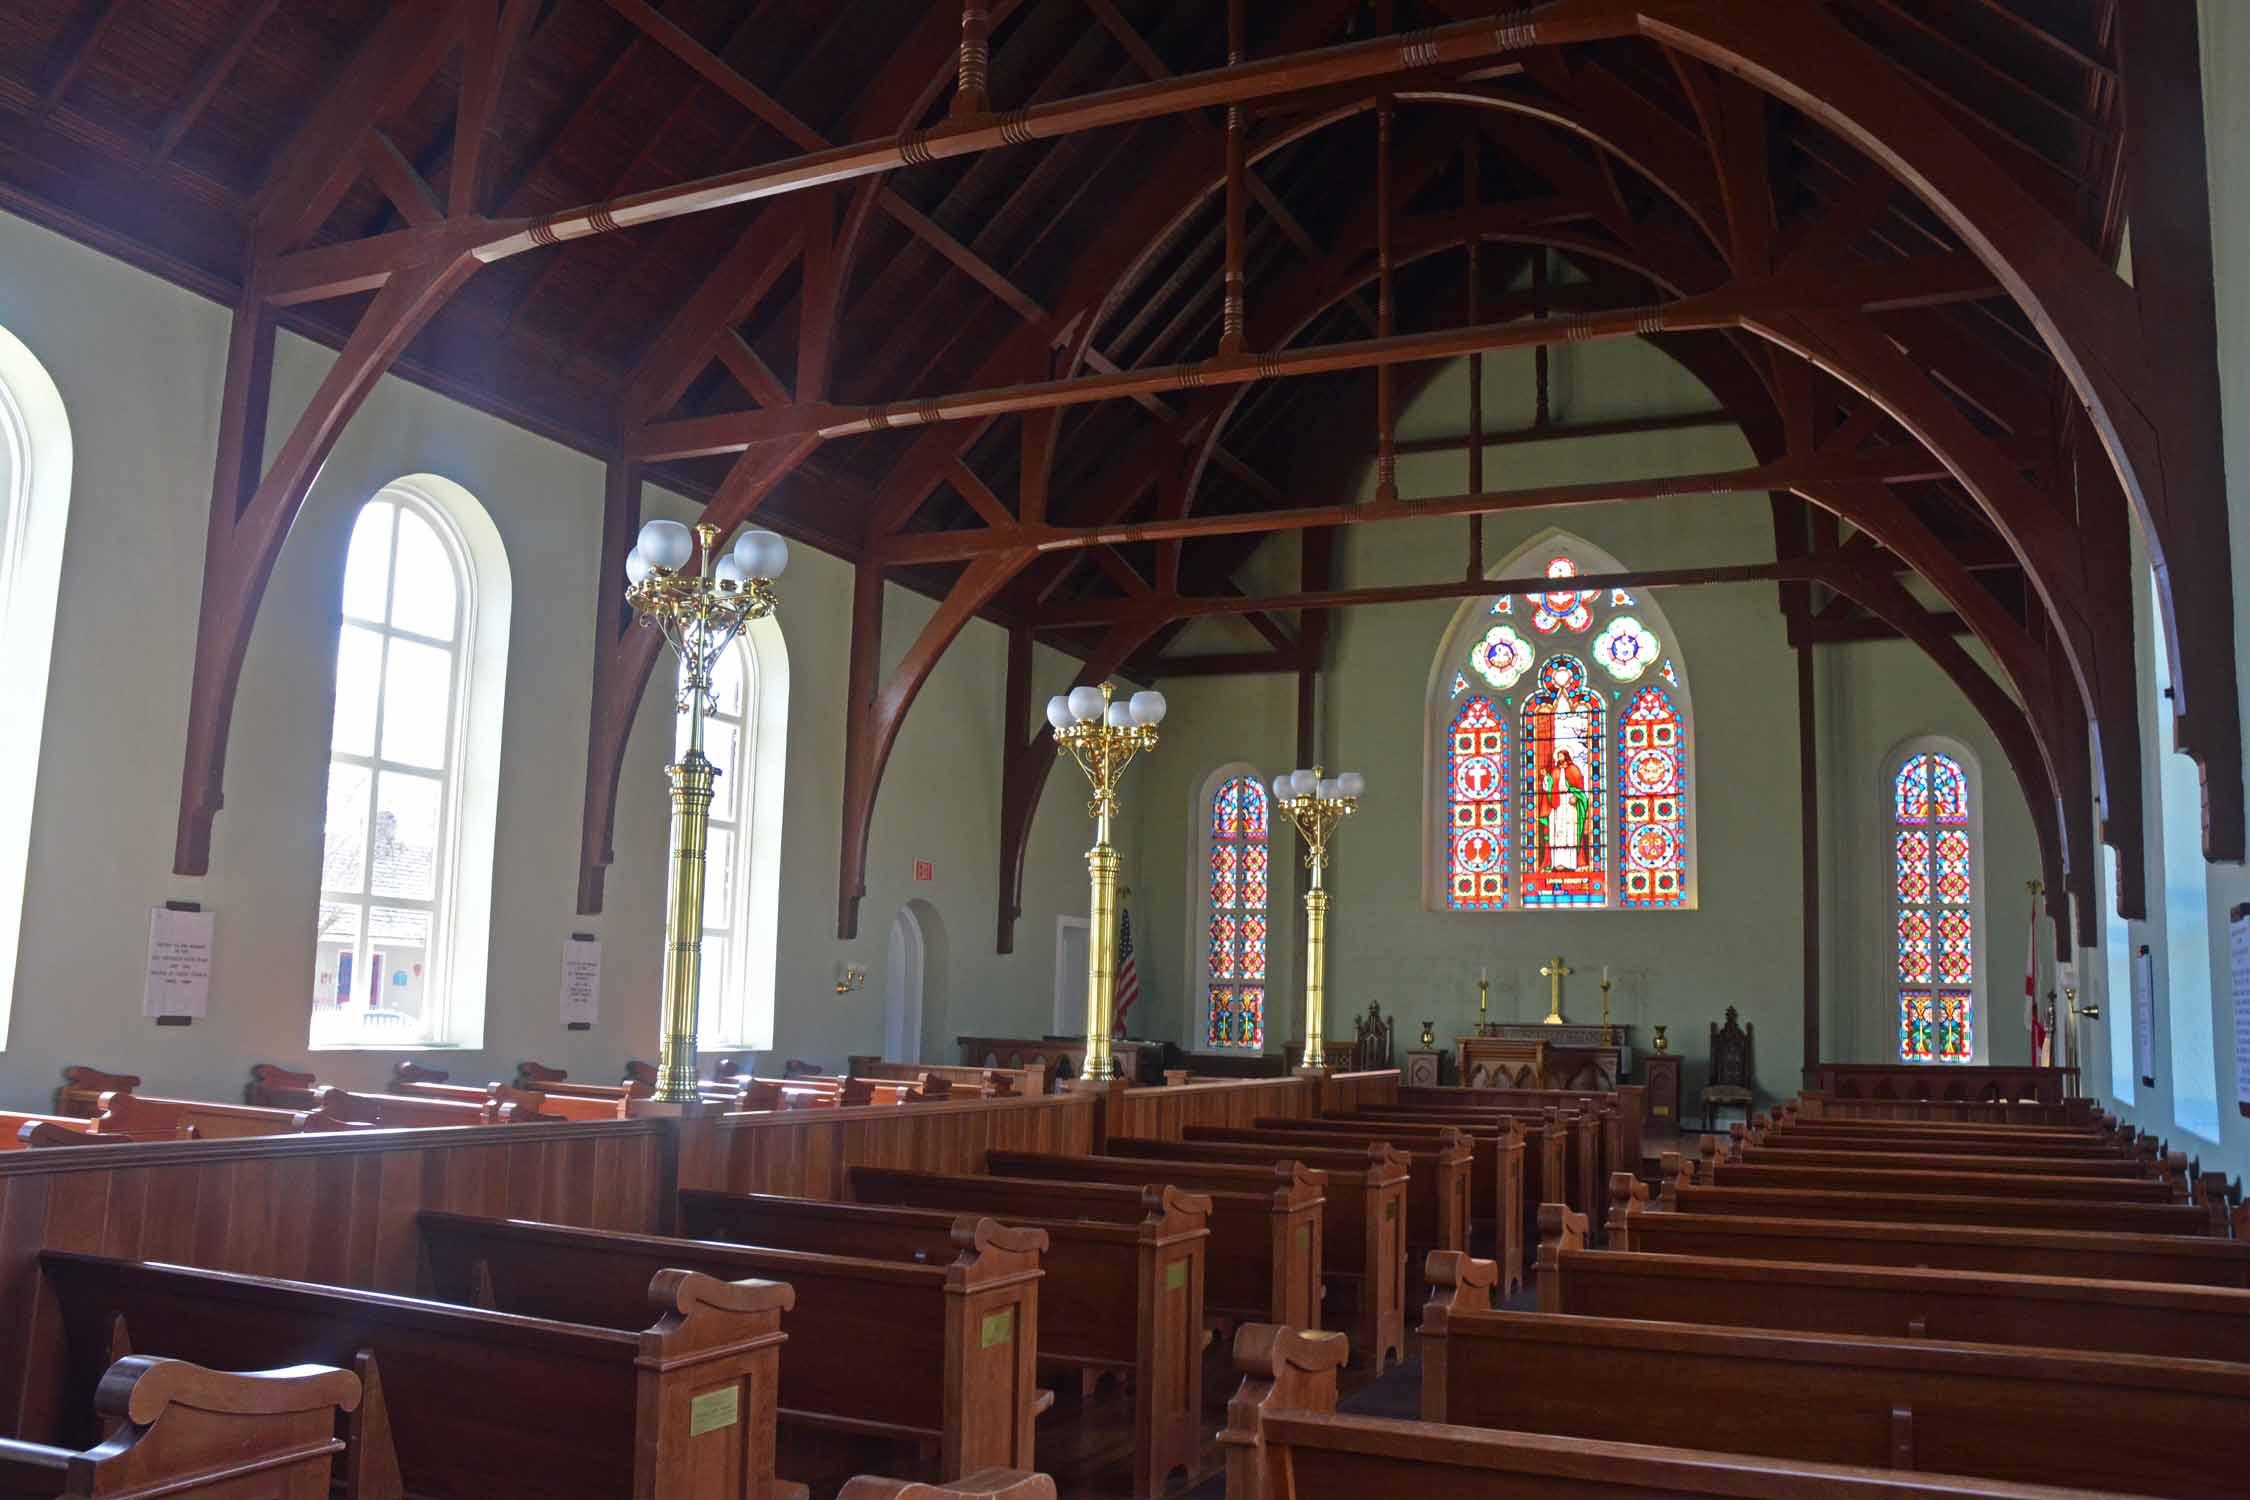 The restored old church from the 1800's.  Loved the soft green color and all the wood work.